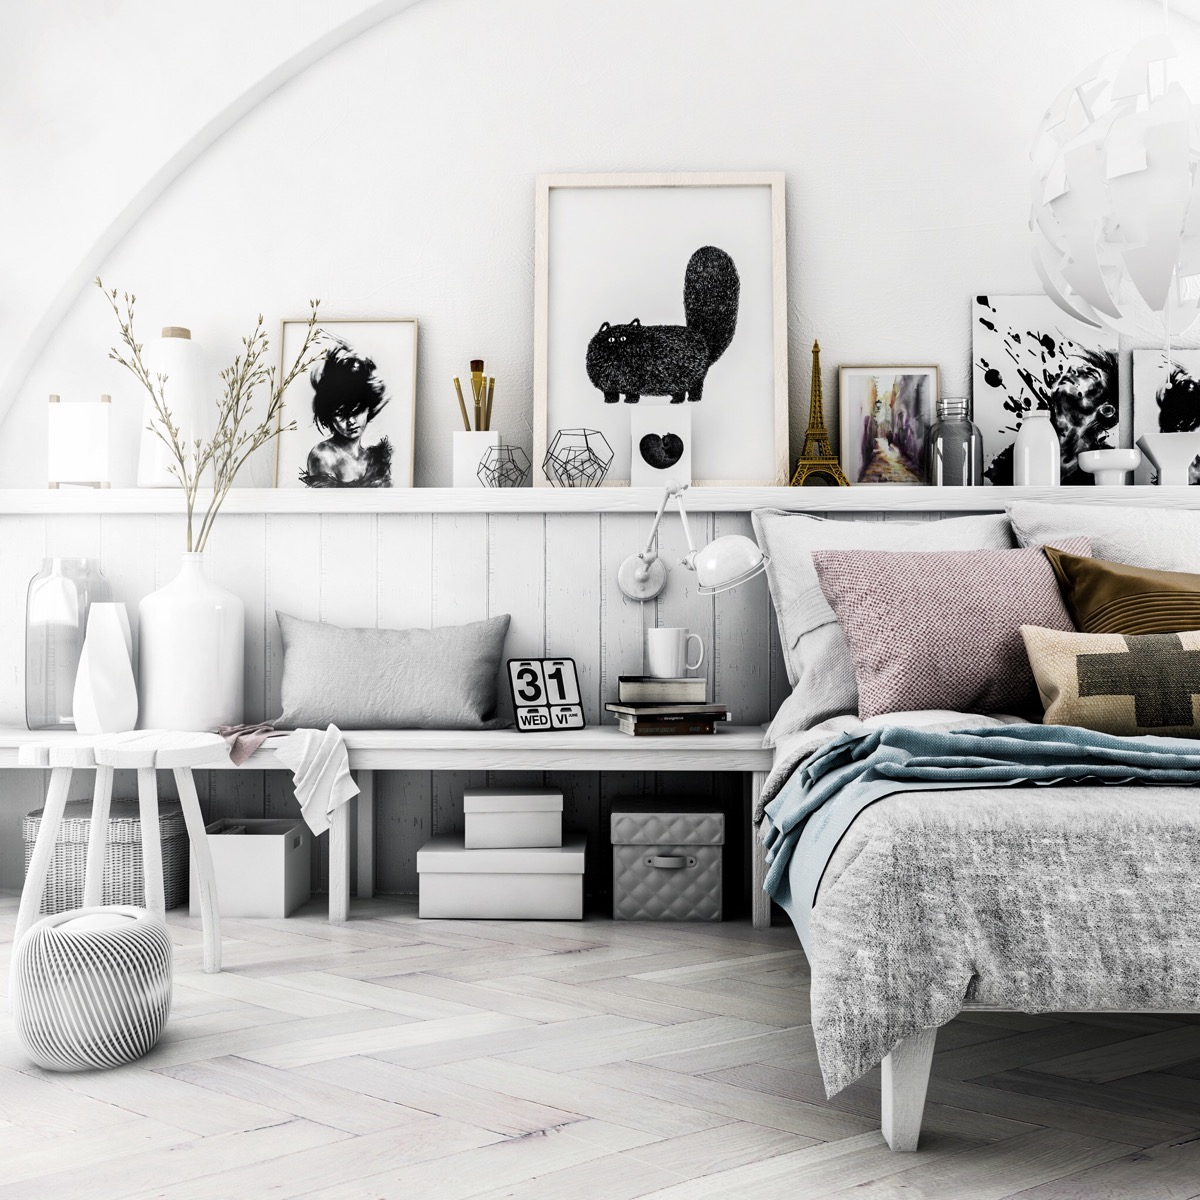 Kpop Bedroom Tumblr Home Designing 40 Beautiful Bedrooms That We Are In Awe